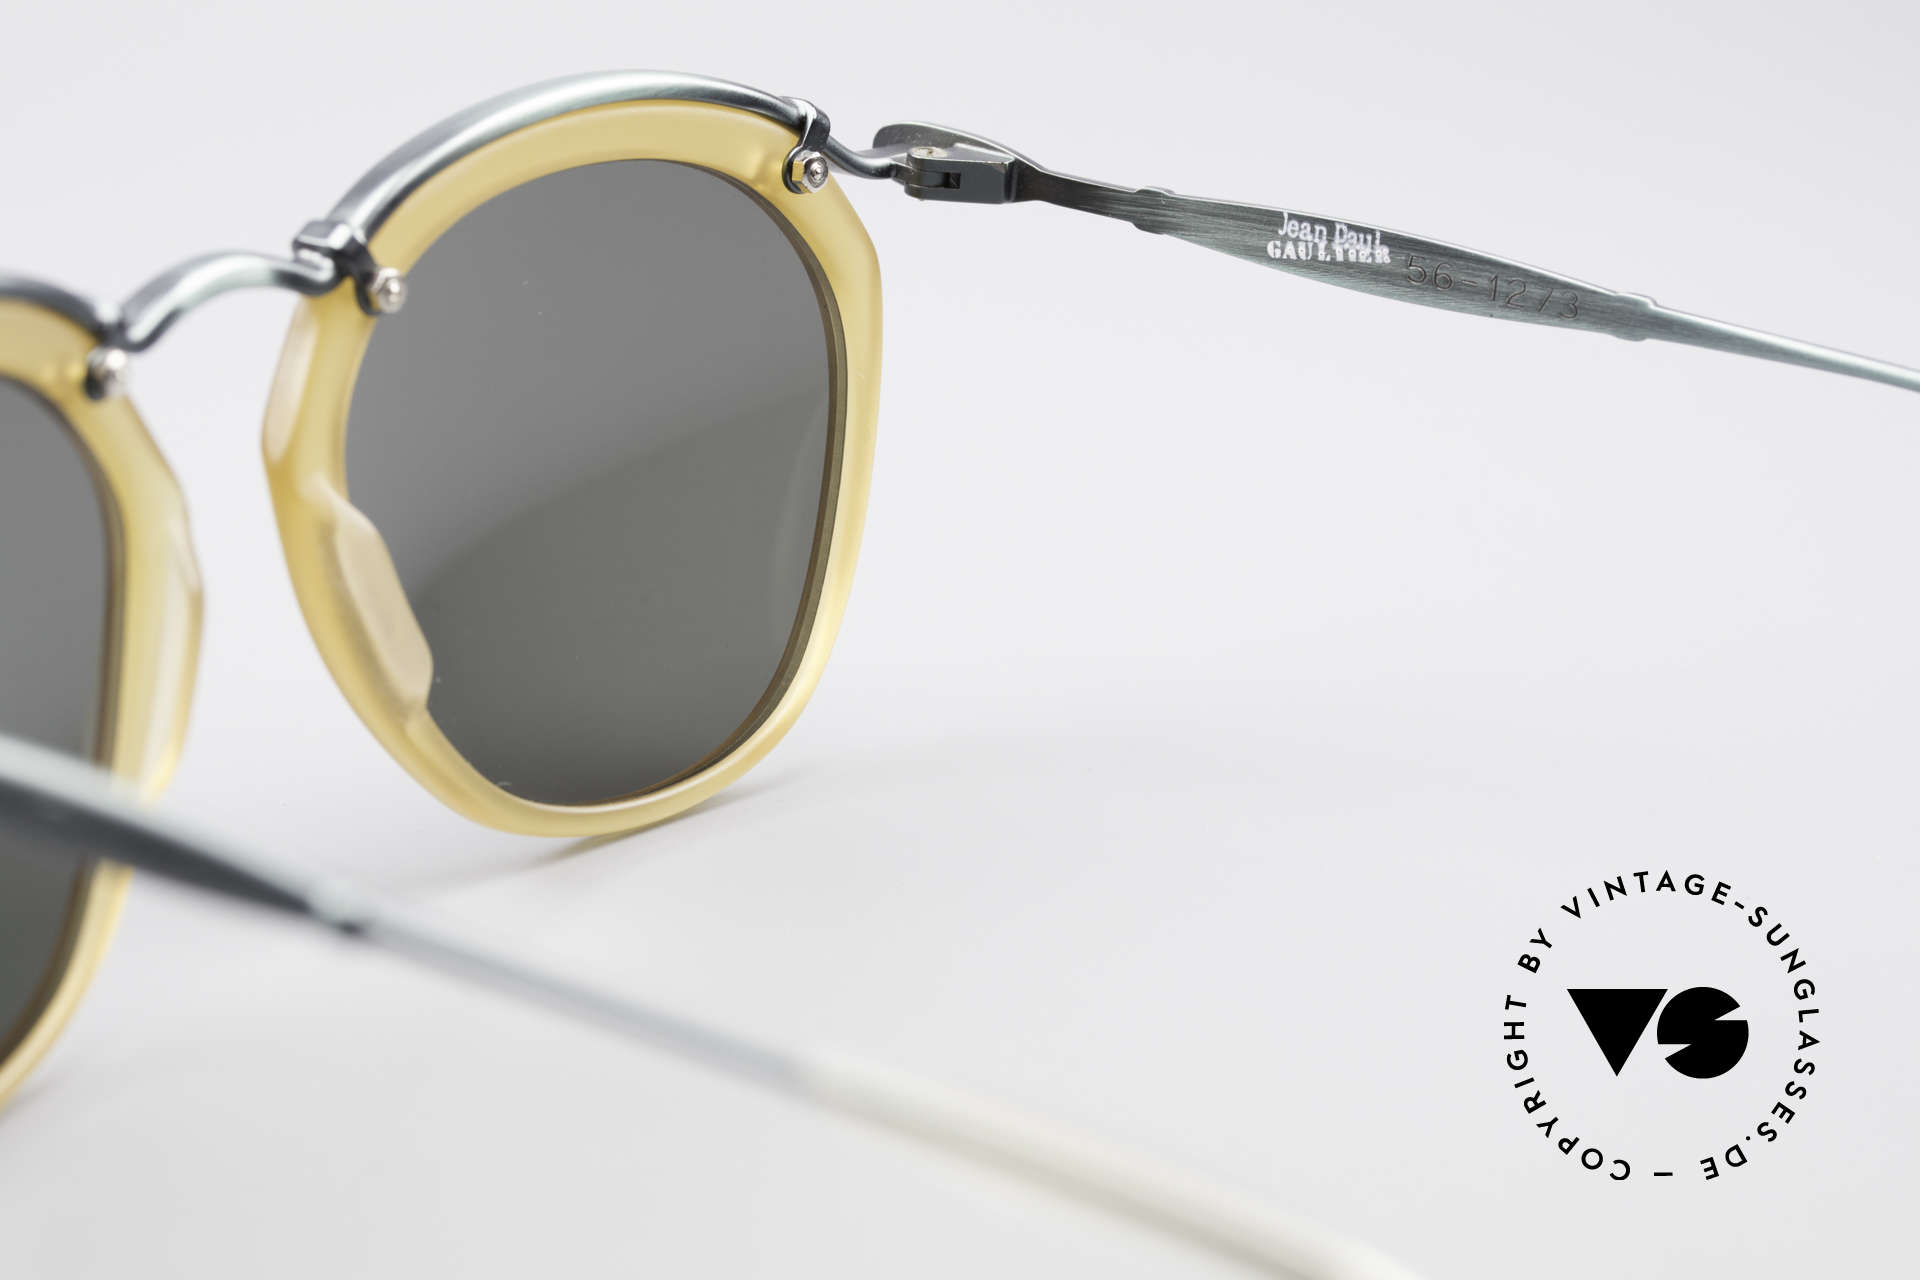 Jean Paul Gaultier 56-1273 Panto Style Sunglasses, NO RETRO shades, but a 20 years old ORIGINAL, Made for Men and Women